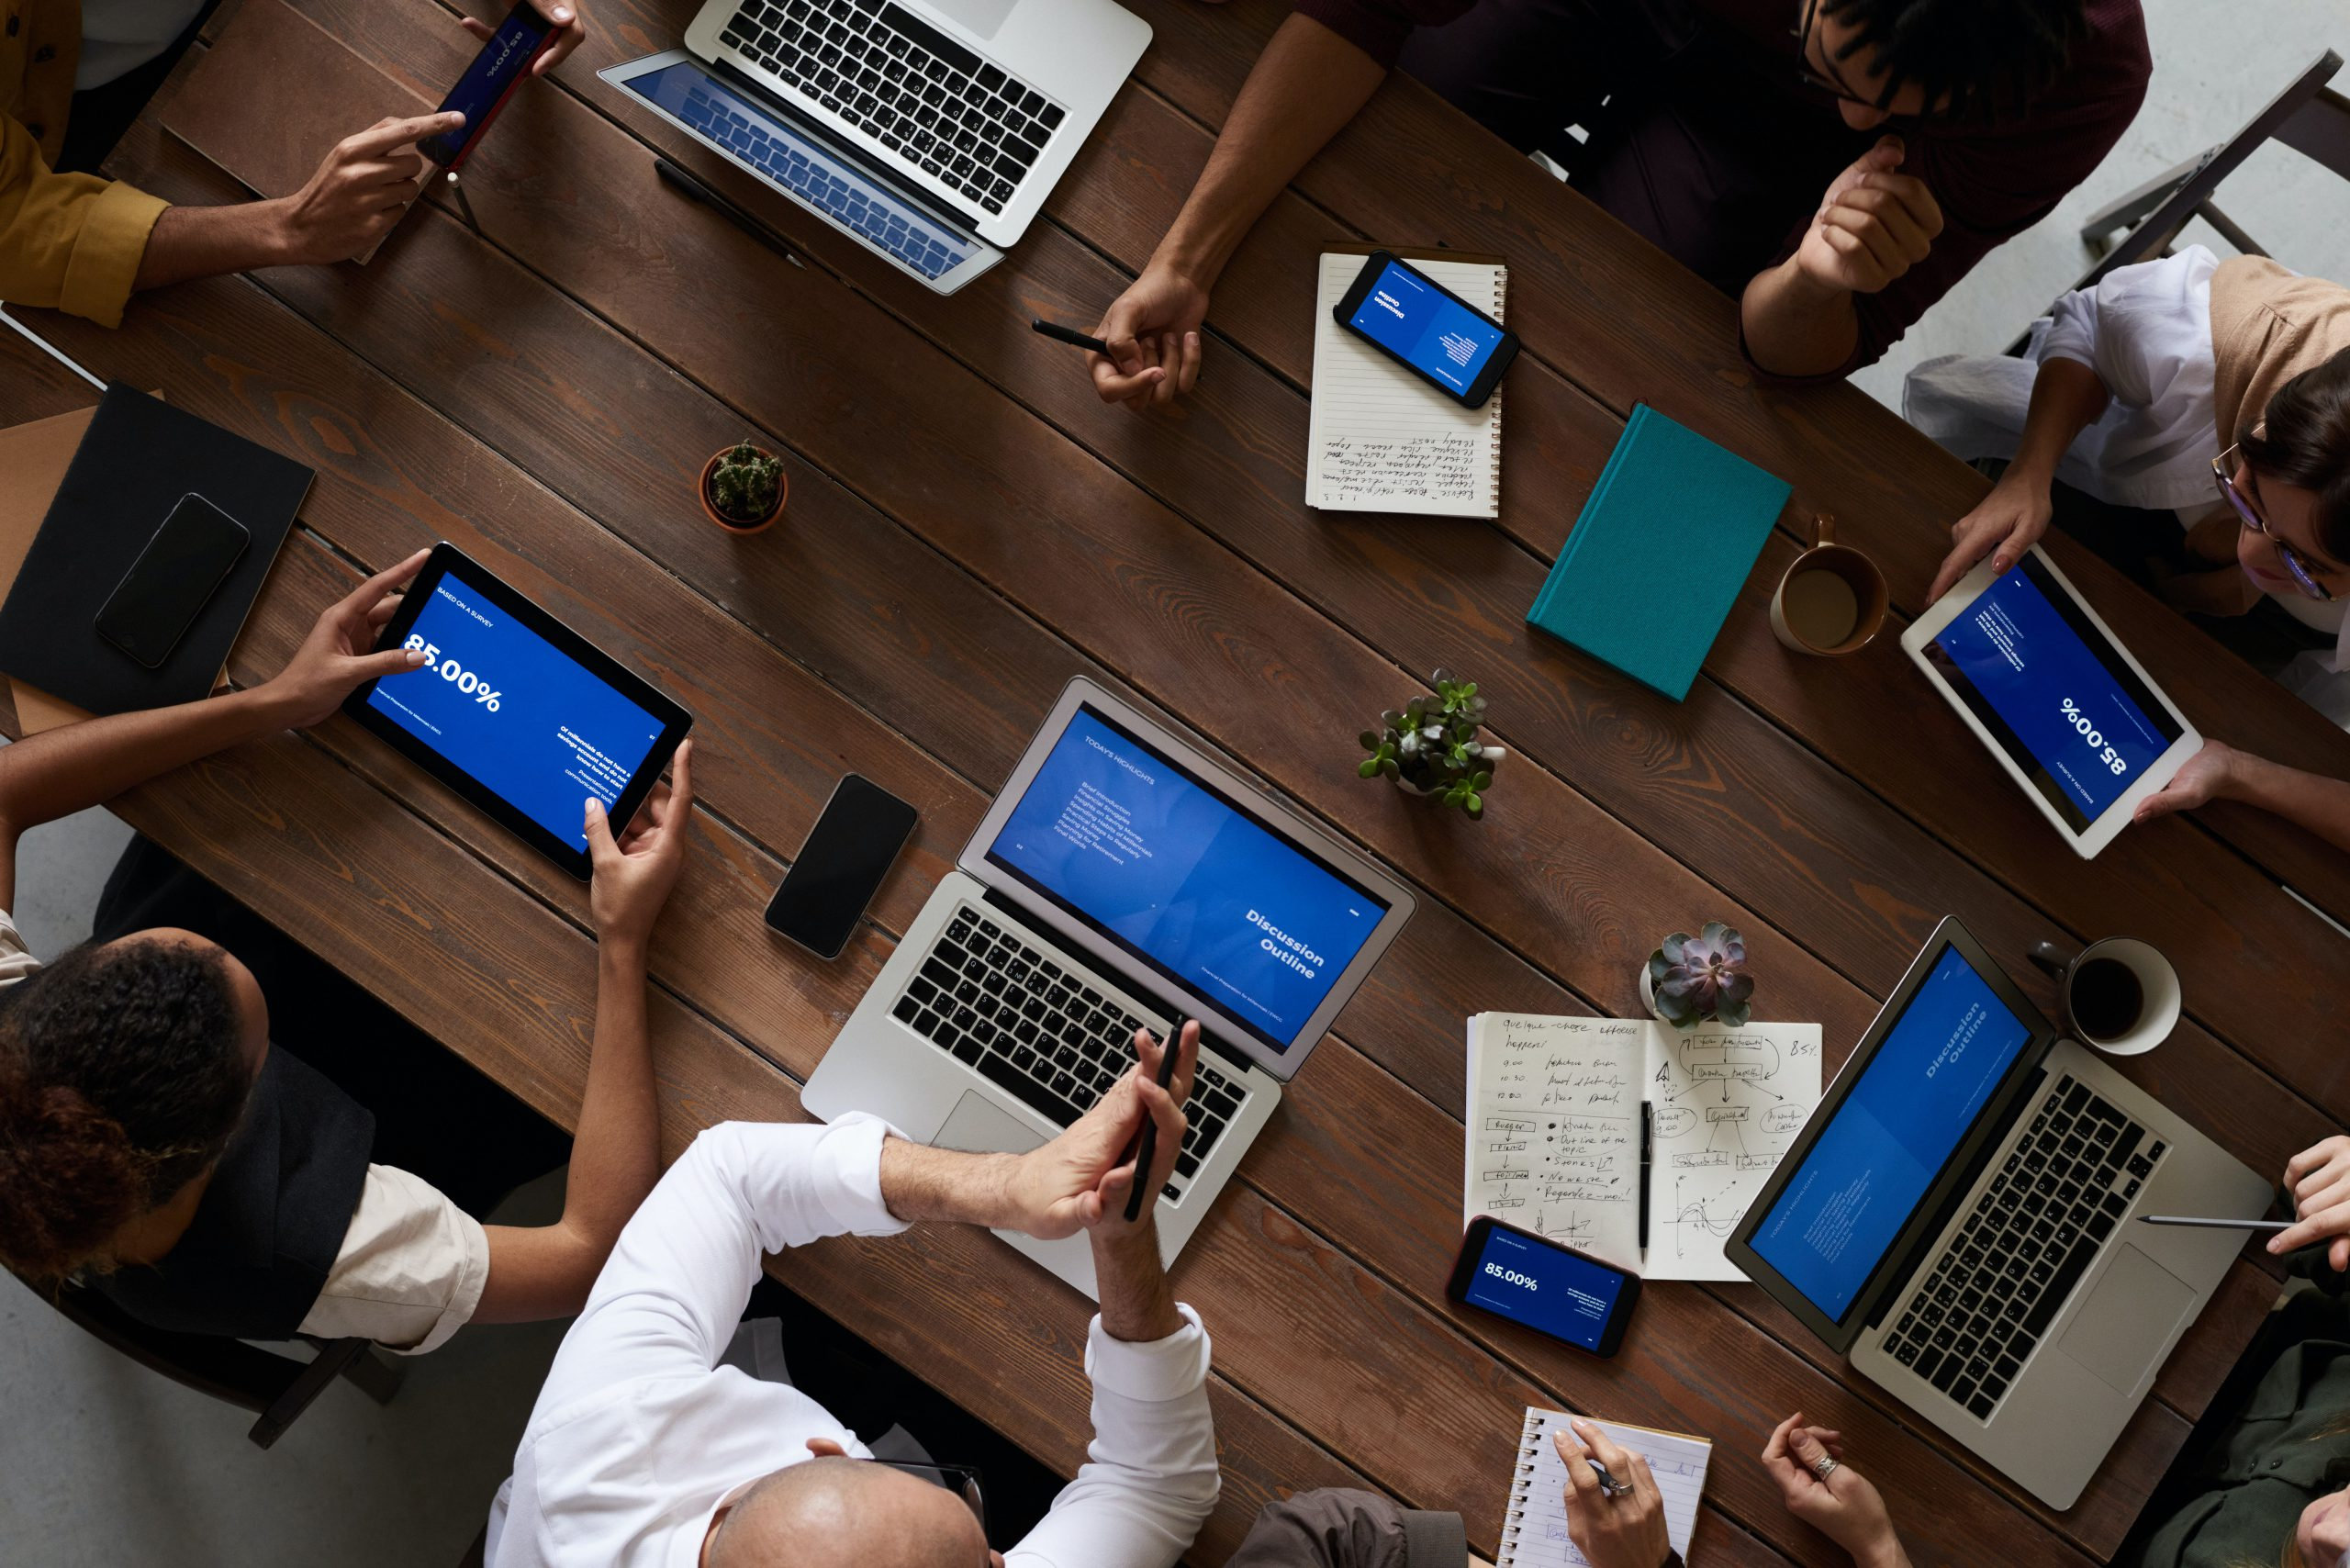 Knox mobile devices in the office